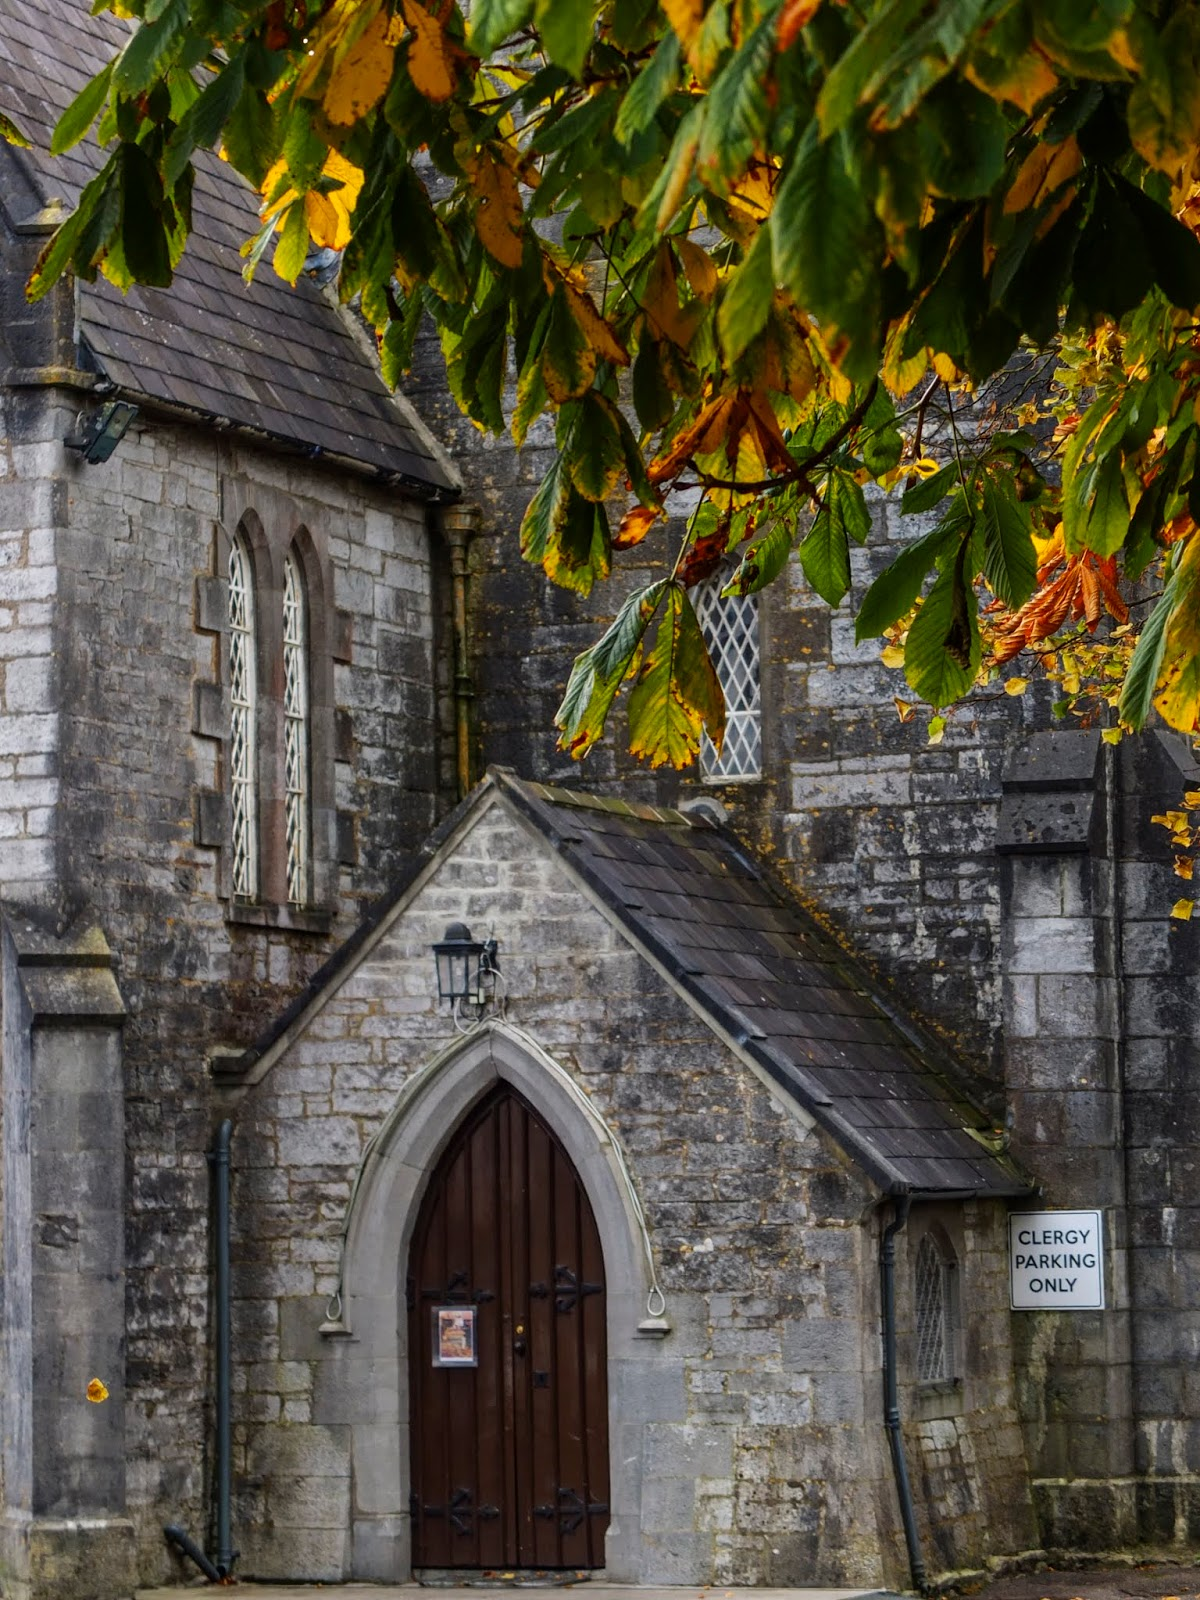 St James' Church, Mallow, Co.Cork pictured in October.